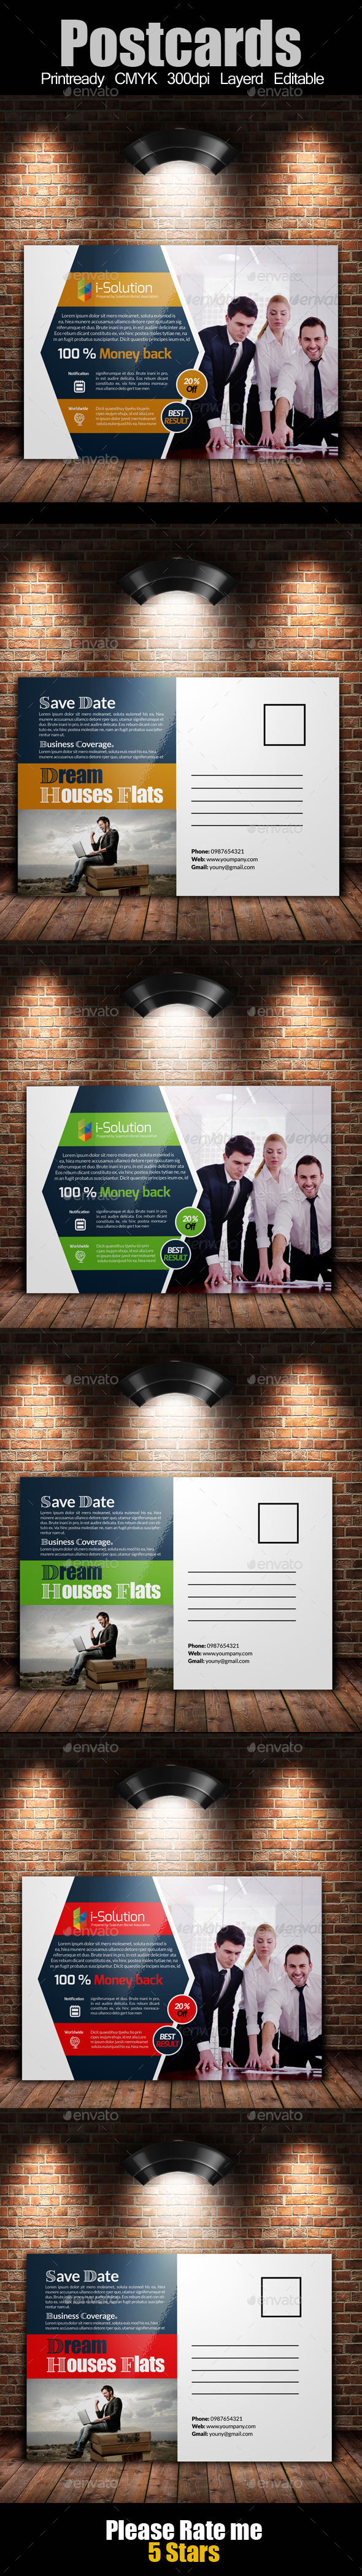 Multi Use Business Post Cards Template - Cards & Invites Print Templates